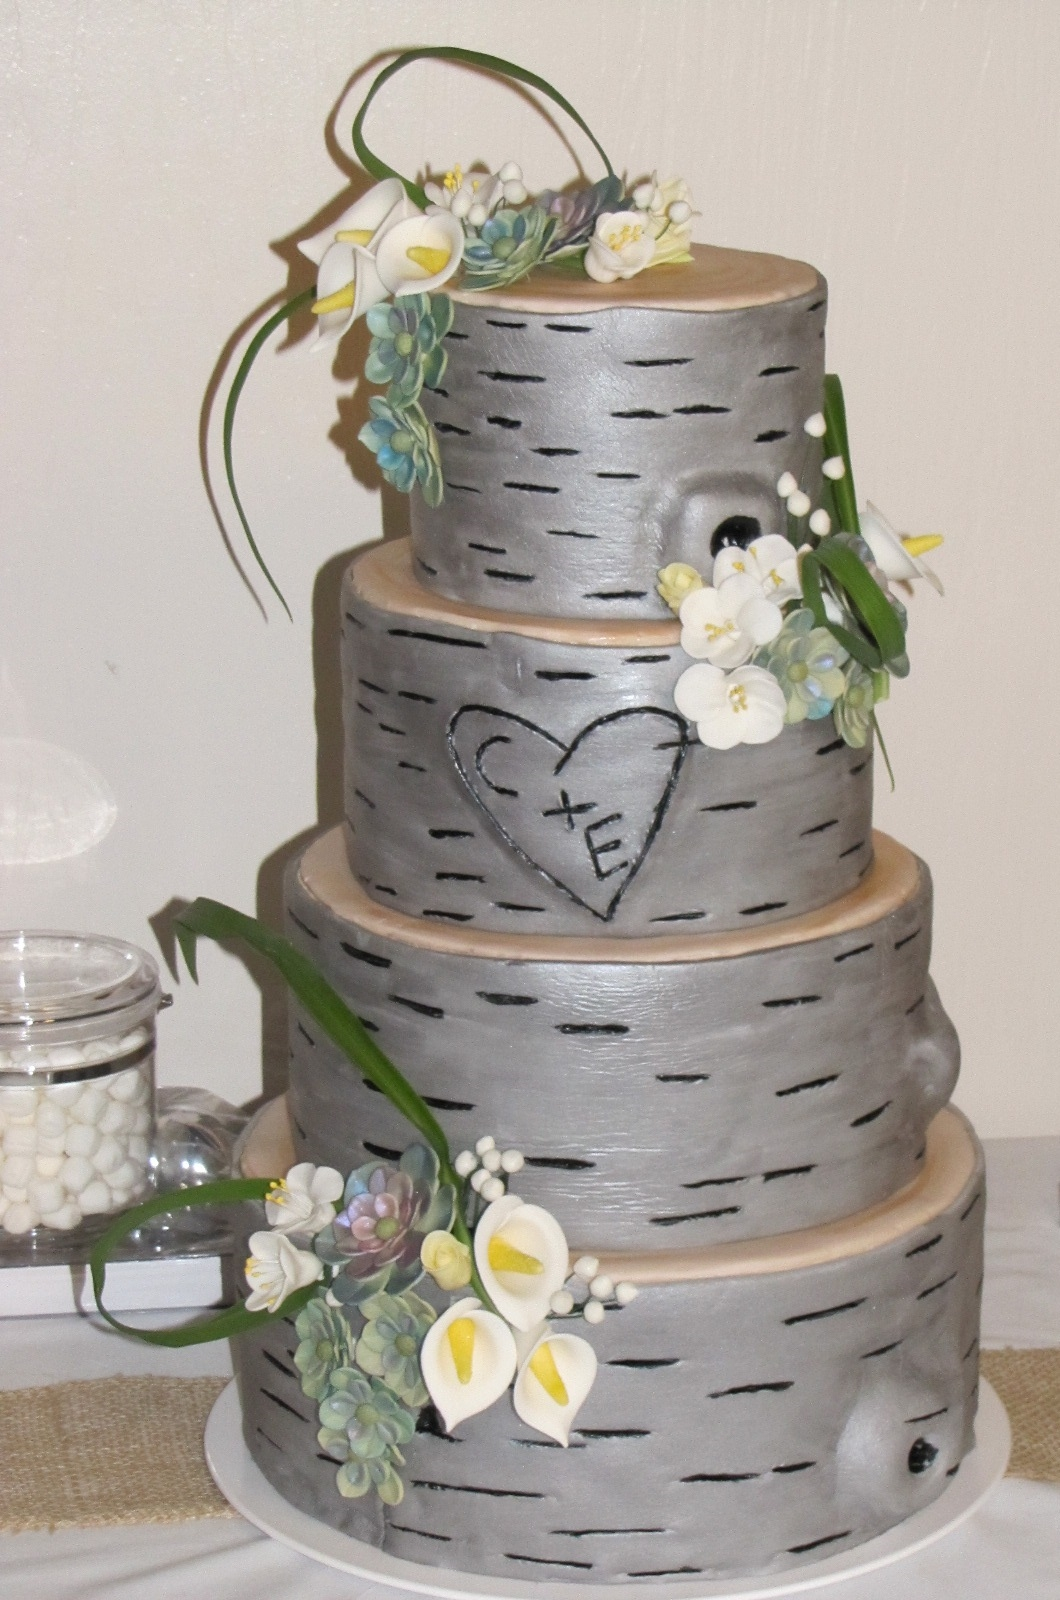 A Bride Brought Me A Picture Of A Birch Tree Cake On Pinterest I Tried To Replicate It This Is What I Came Up With It Is Decorated In Fon  A bride brought me a picture of a birch tree cake on pinterest. I tried to replicate it. This is what I came up with. It is decorated in...